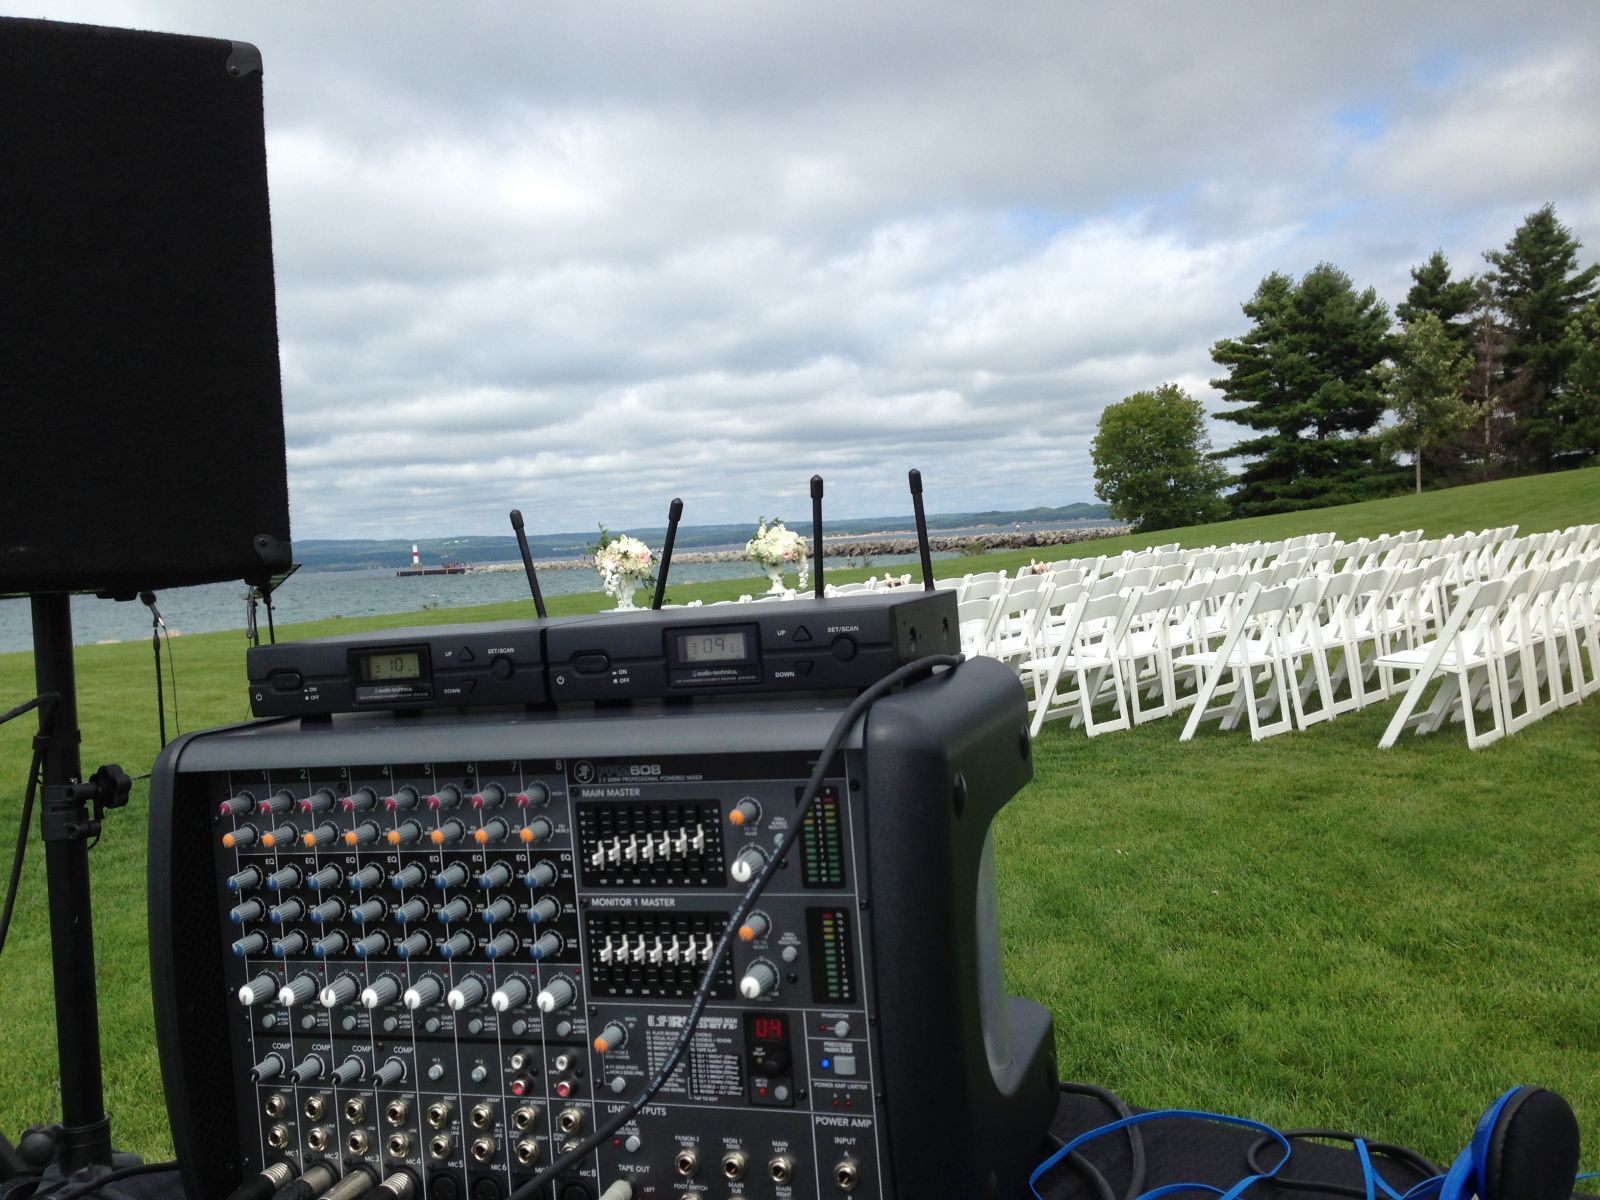 Wireless microphones set up in a public park in Petoskey, Michigan